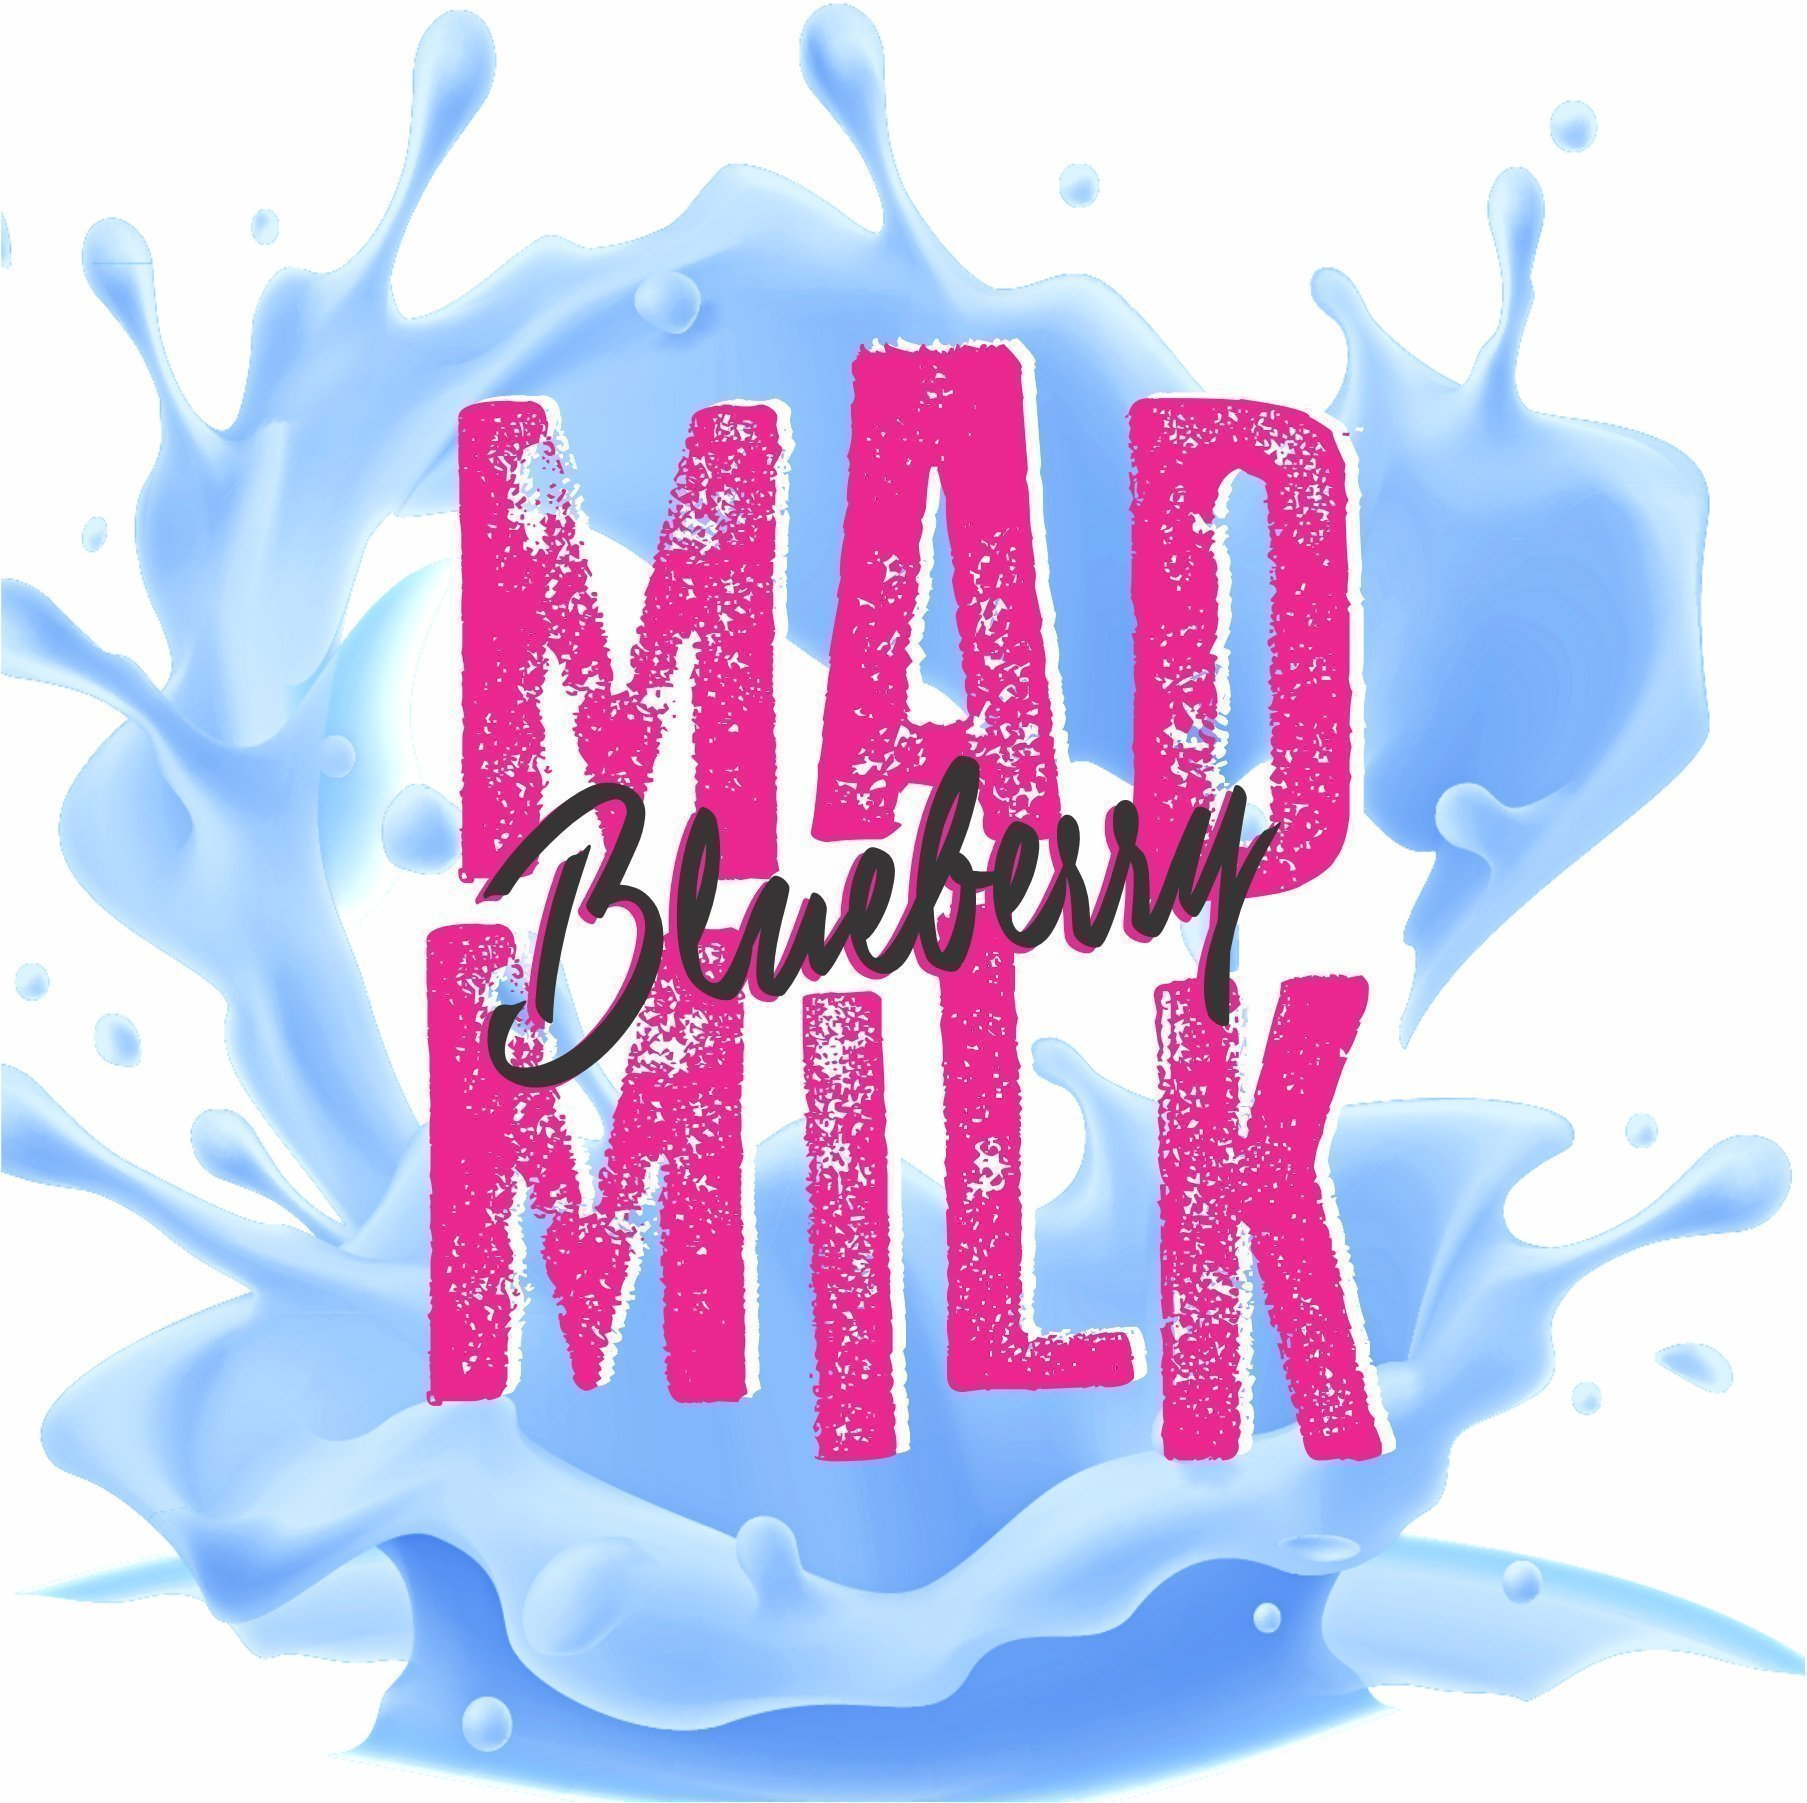 100ml-Mad-Milk-blueberry SHOP HERE!